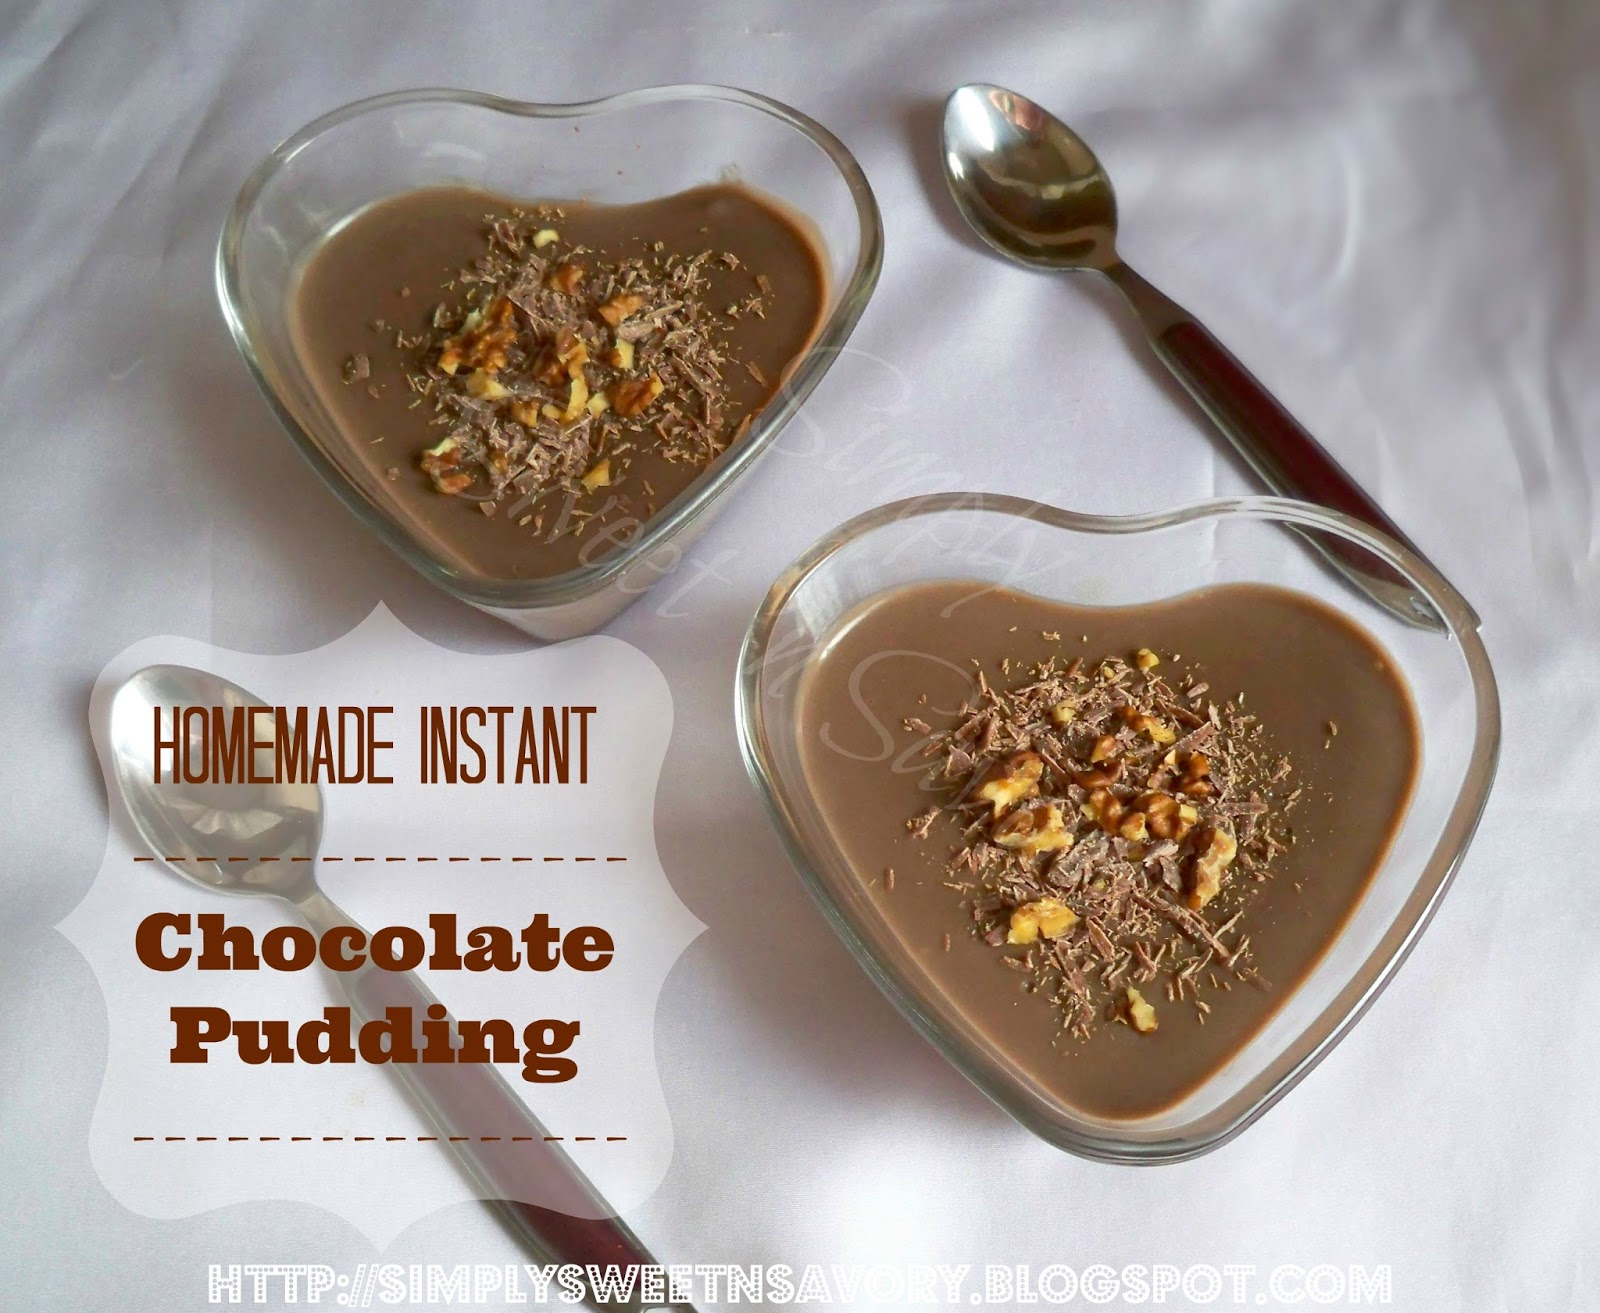 homemade instant chocolate pudding